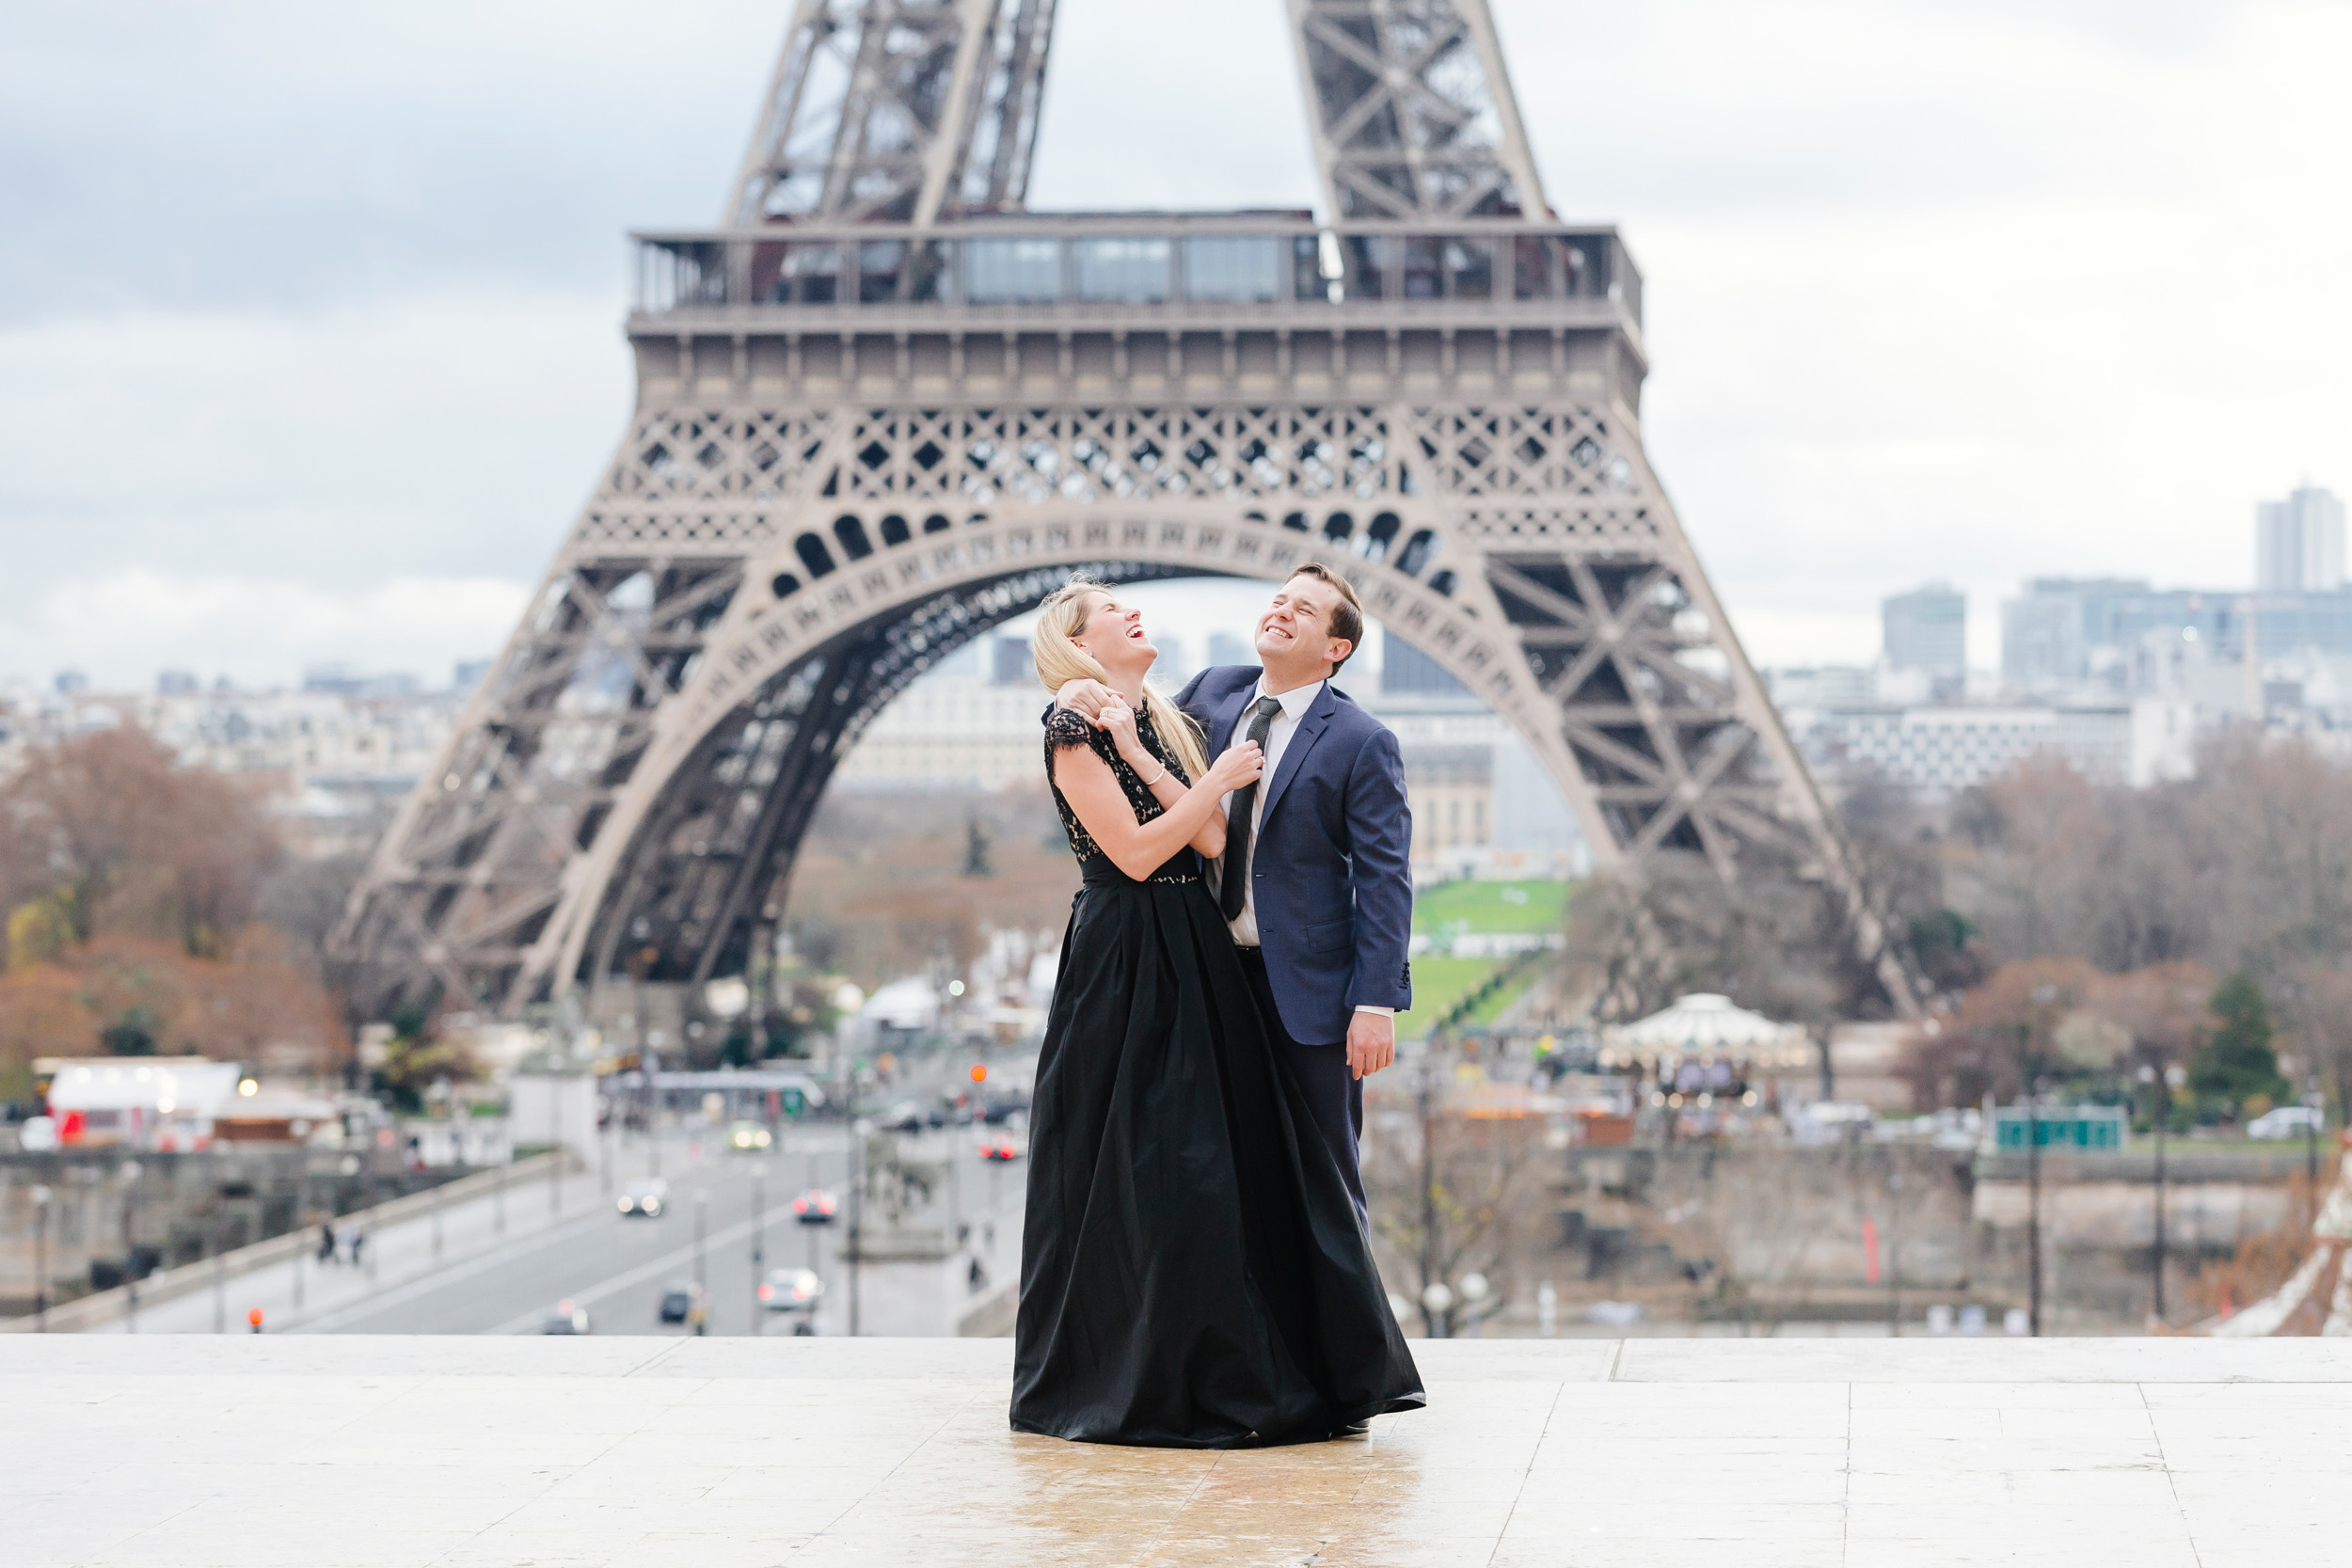 Paris vacation romantic couple portrait laughing happy at Trocadero with the view of Eiffel Tower captured by Paris Photographer Federico Guendel www.iheartparis.fr